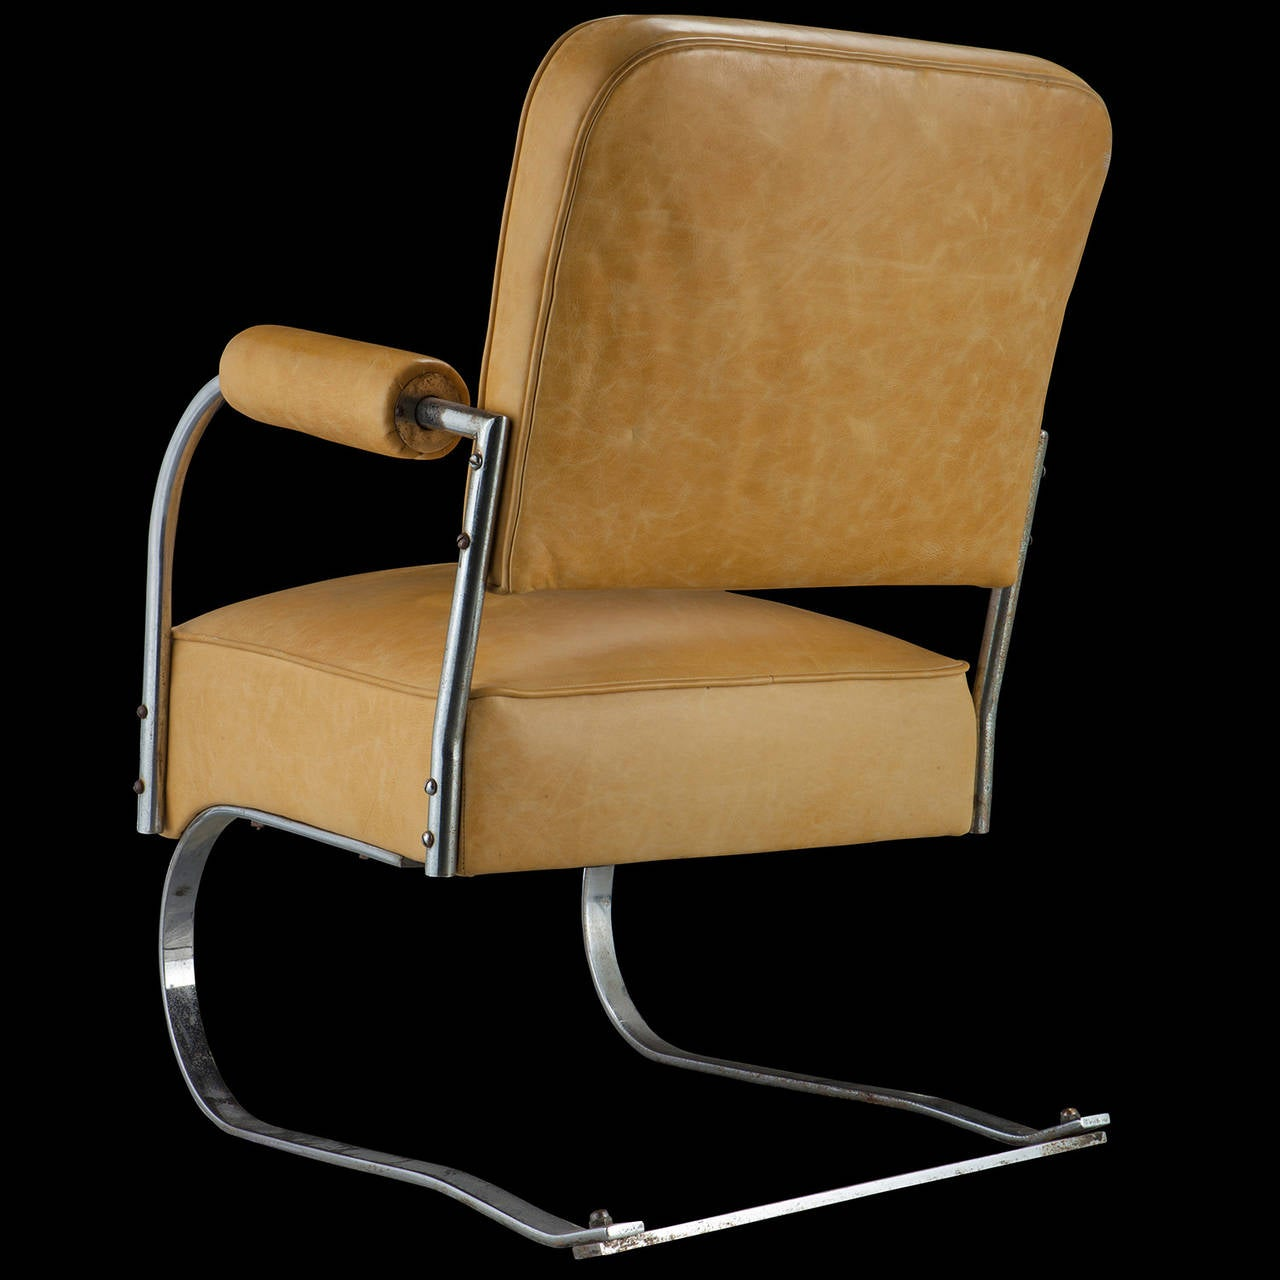 yellow leather and chrome cantilever chair image 4